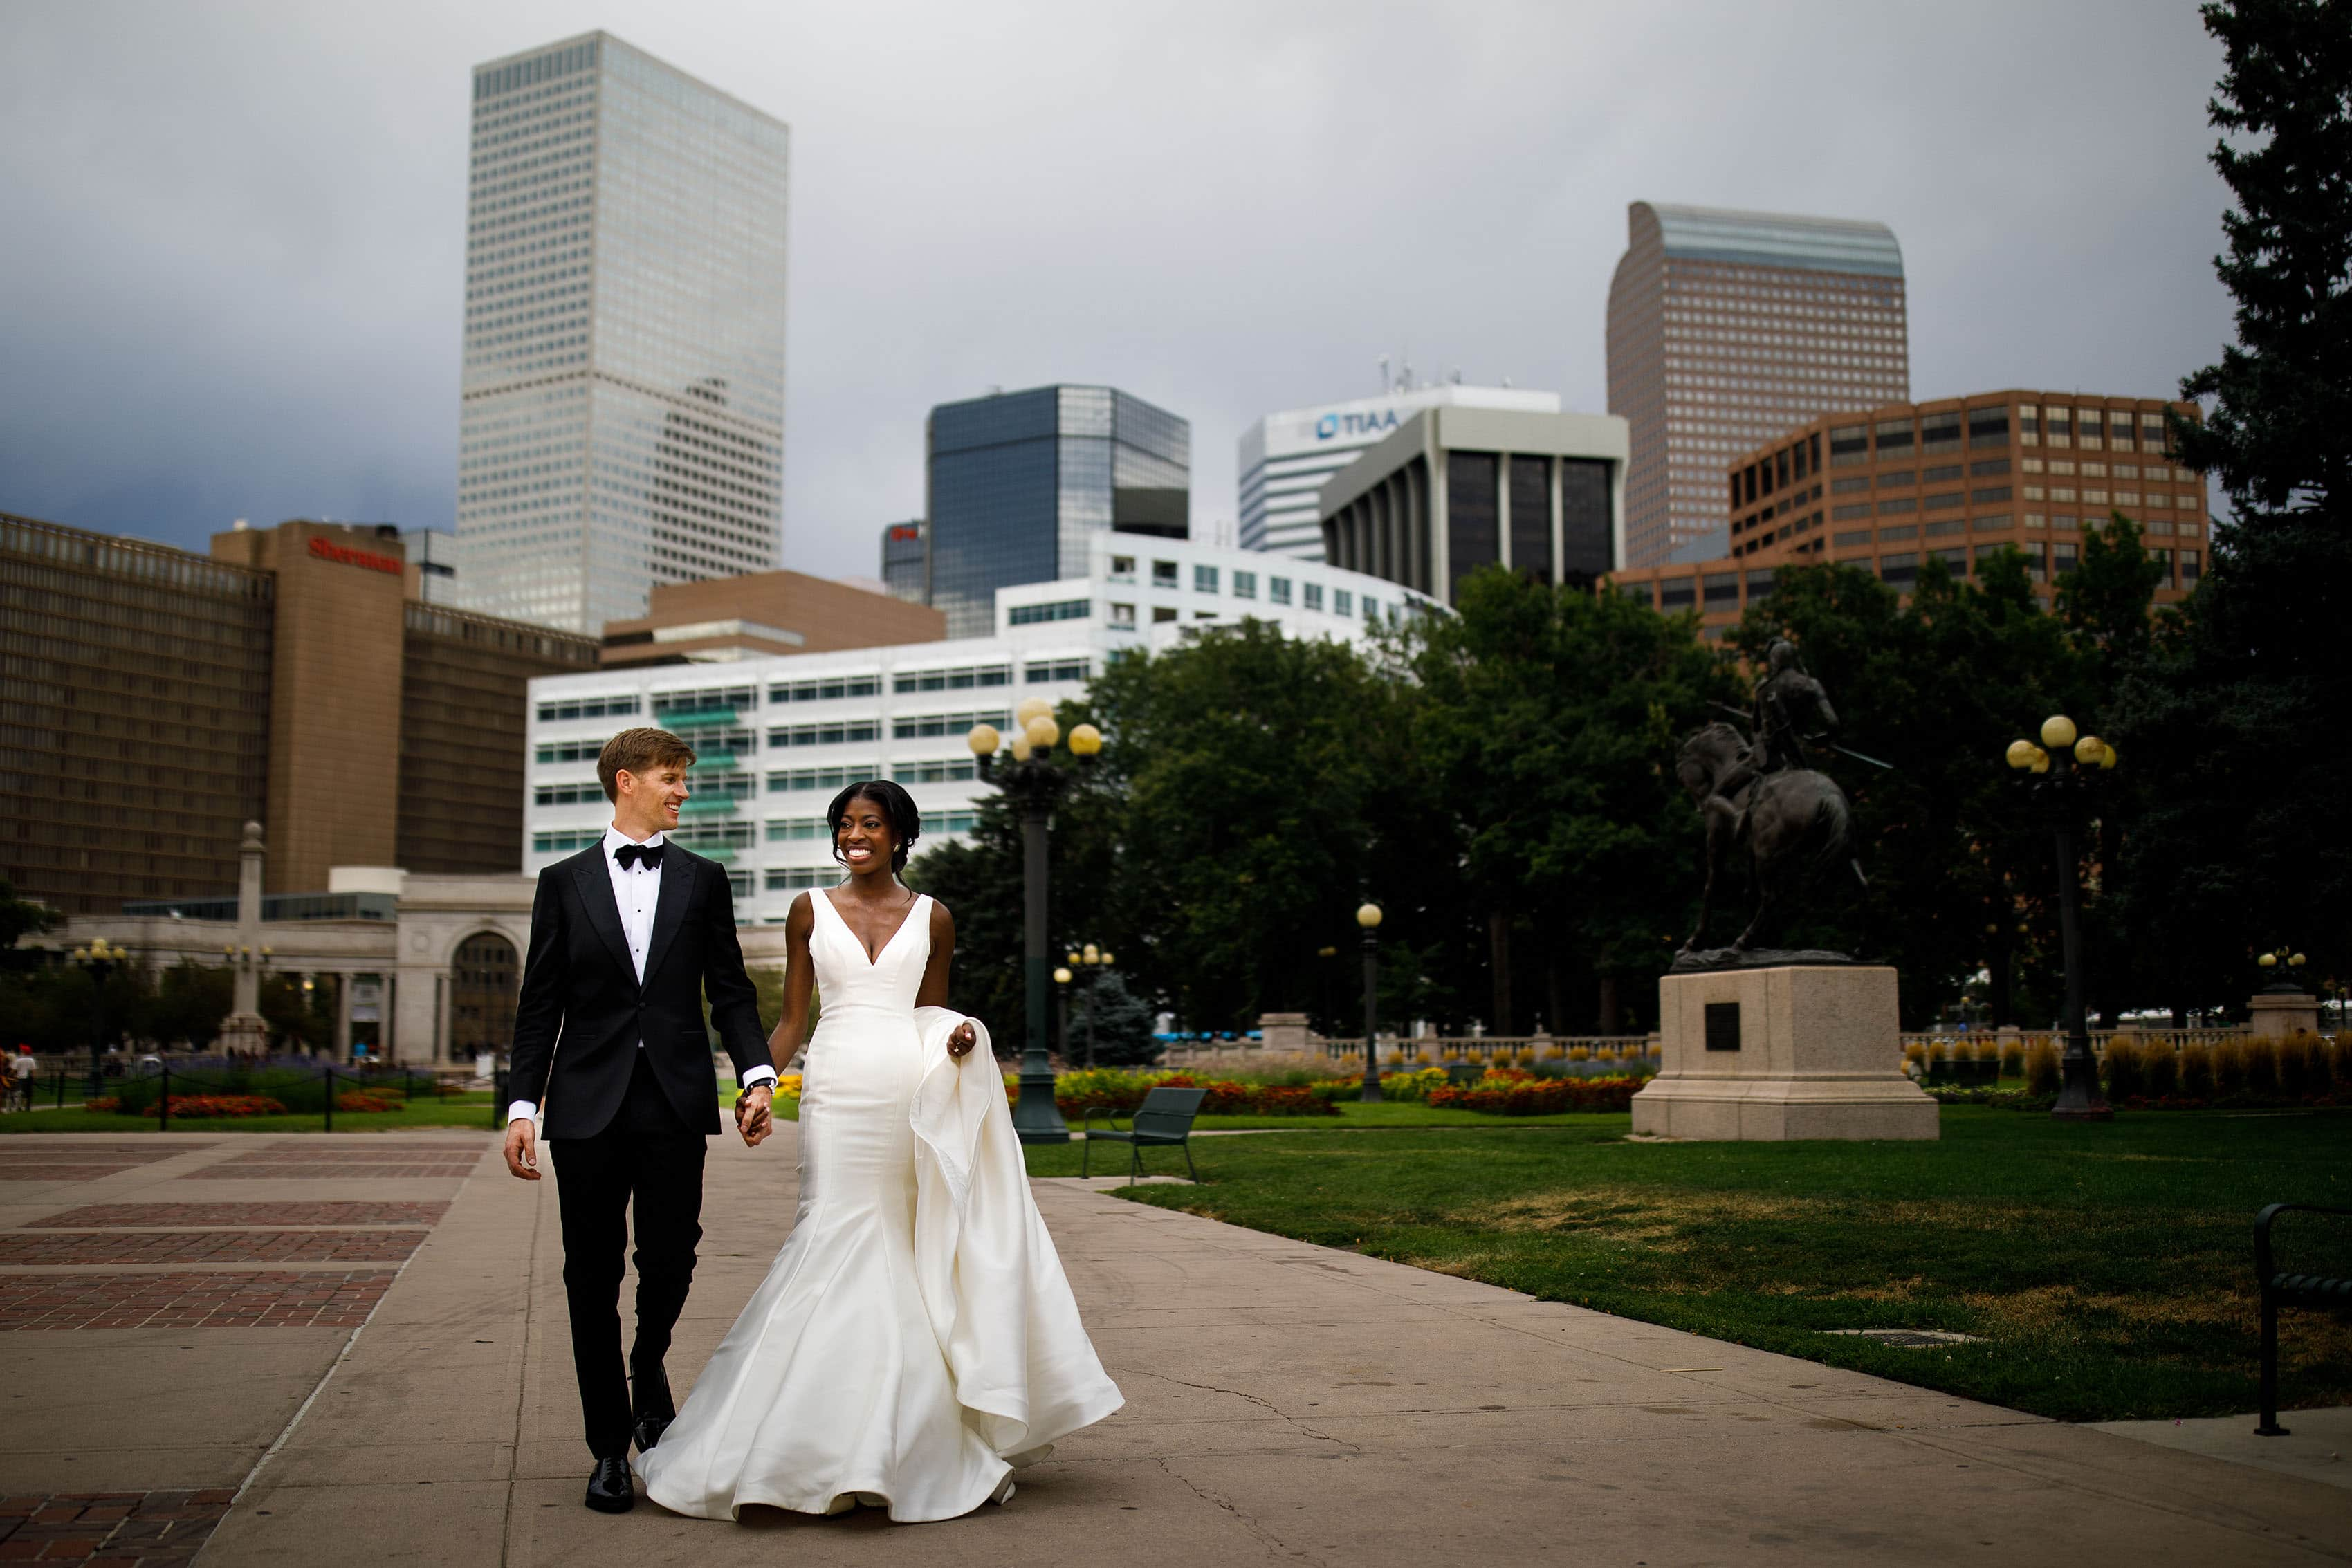 The bride and groom walk in Denver's Civic Center Park on their wedding day